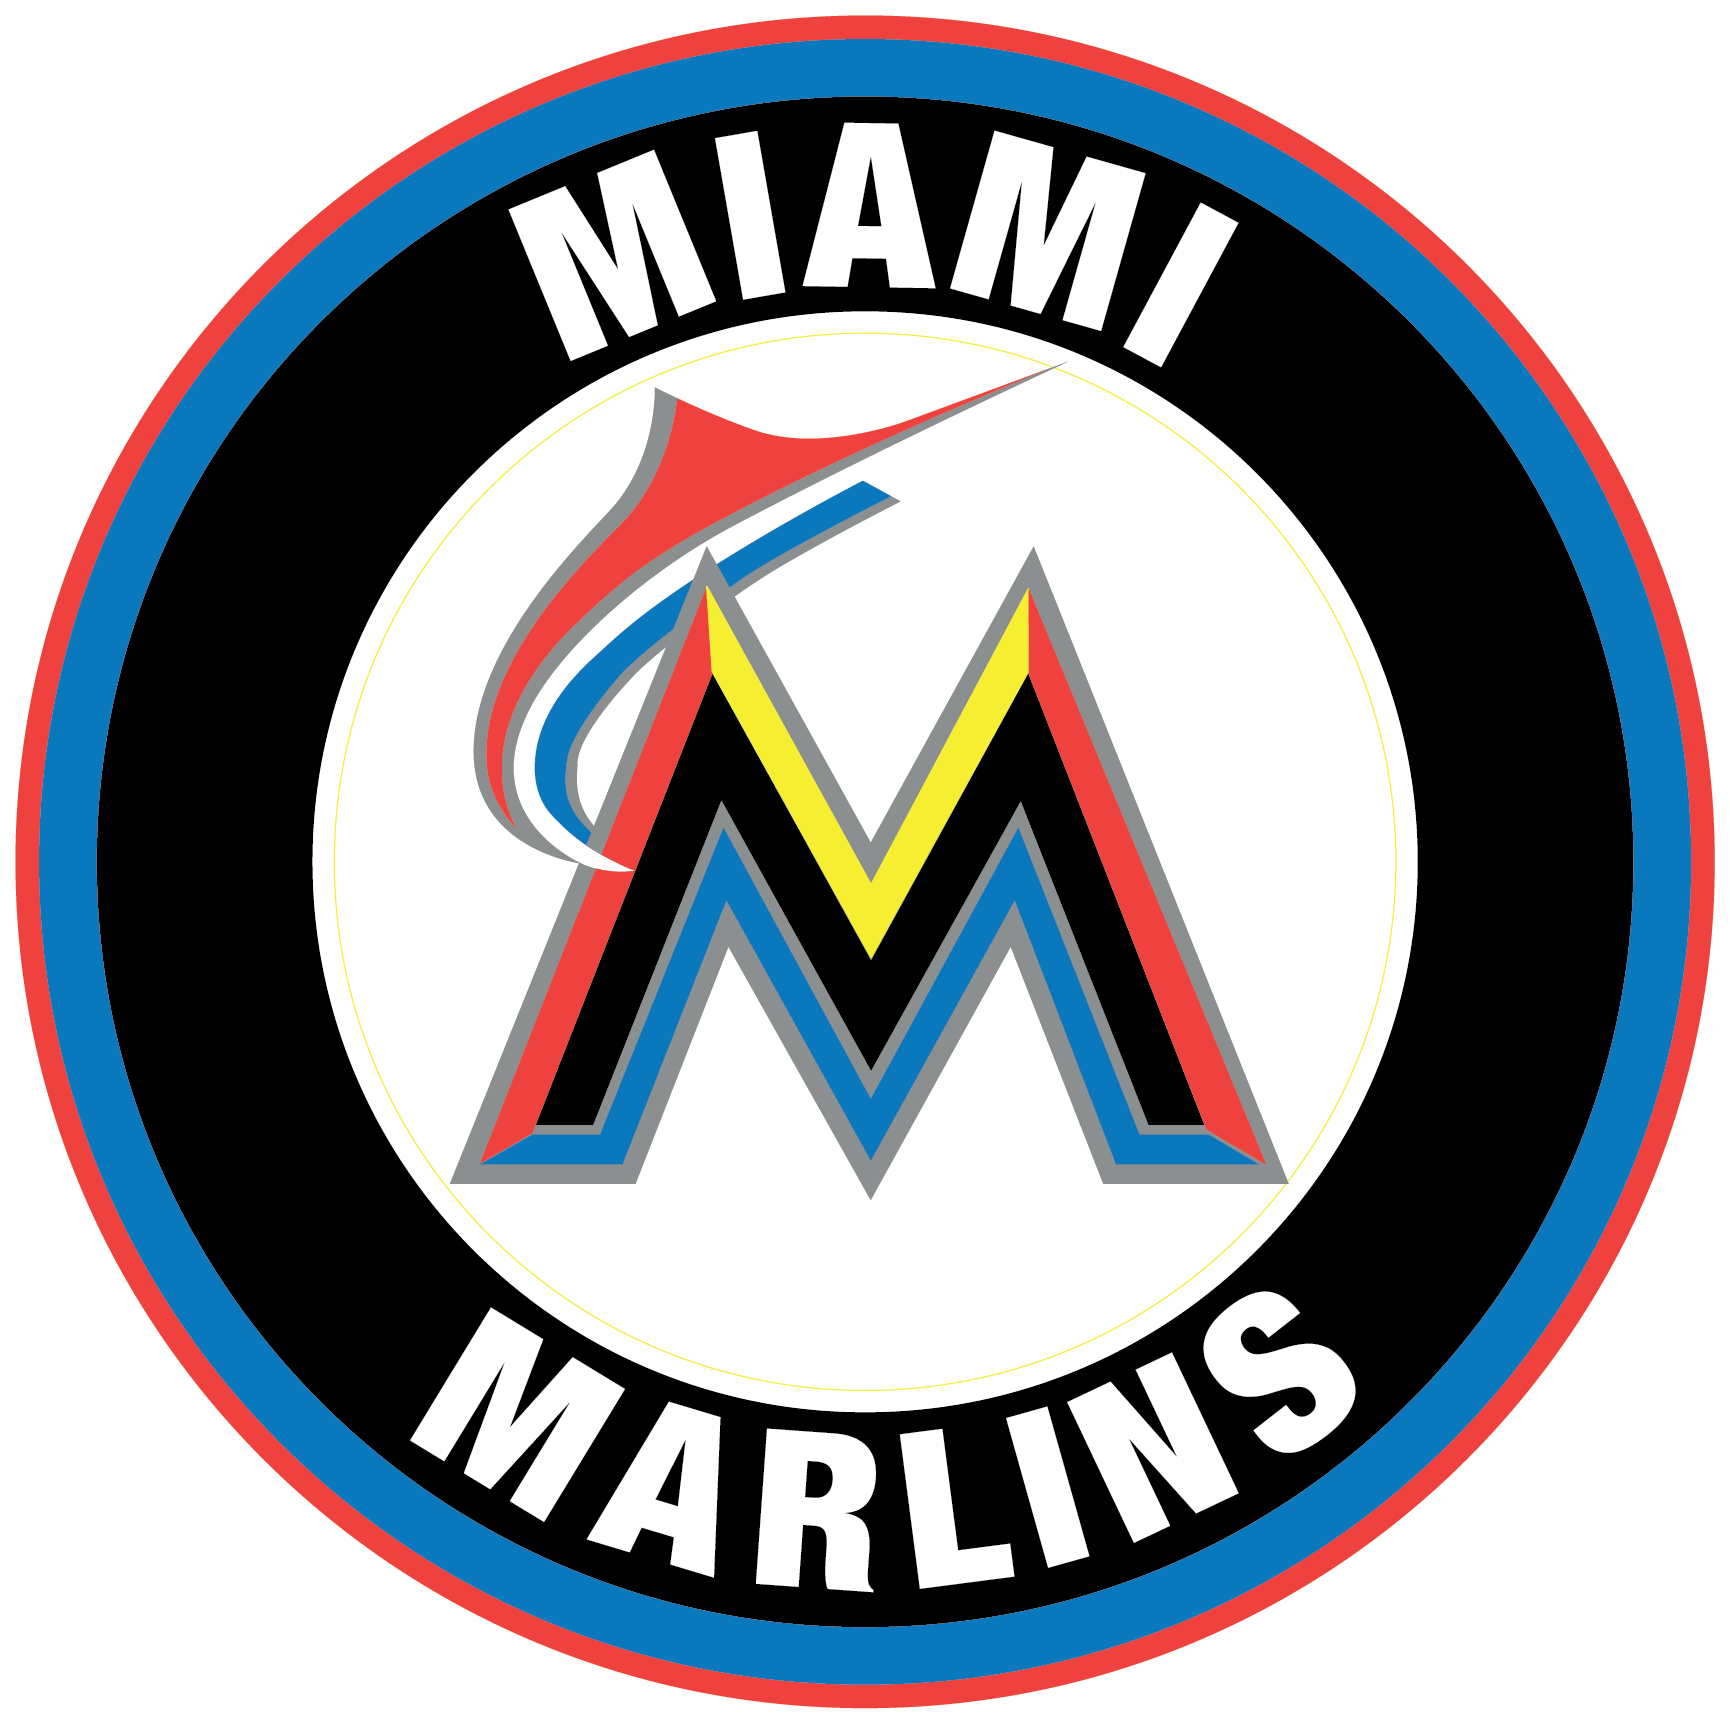 Miami Marlins logo Circle Logo Vinyl Decal Sticker 5 sizes!! | Sportz For Less